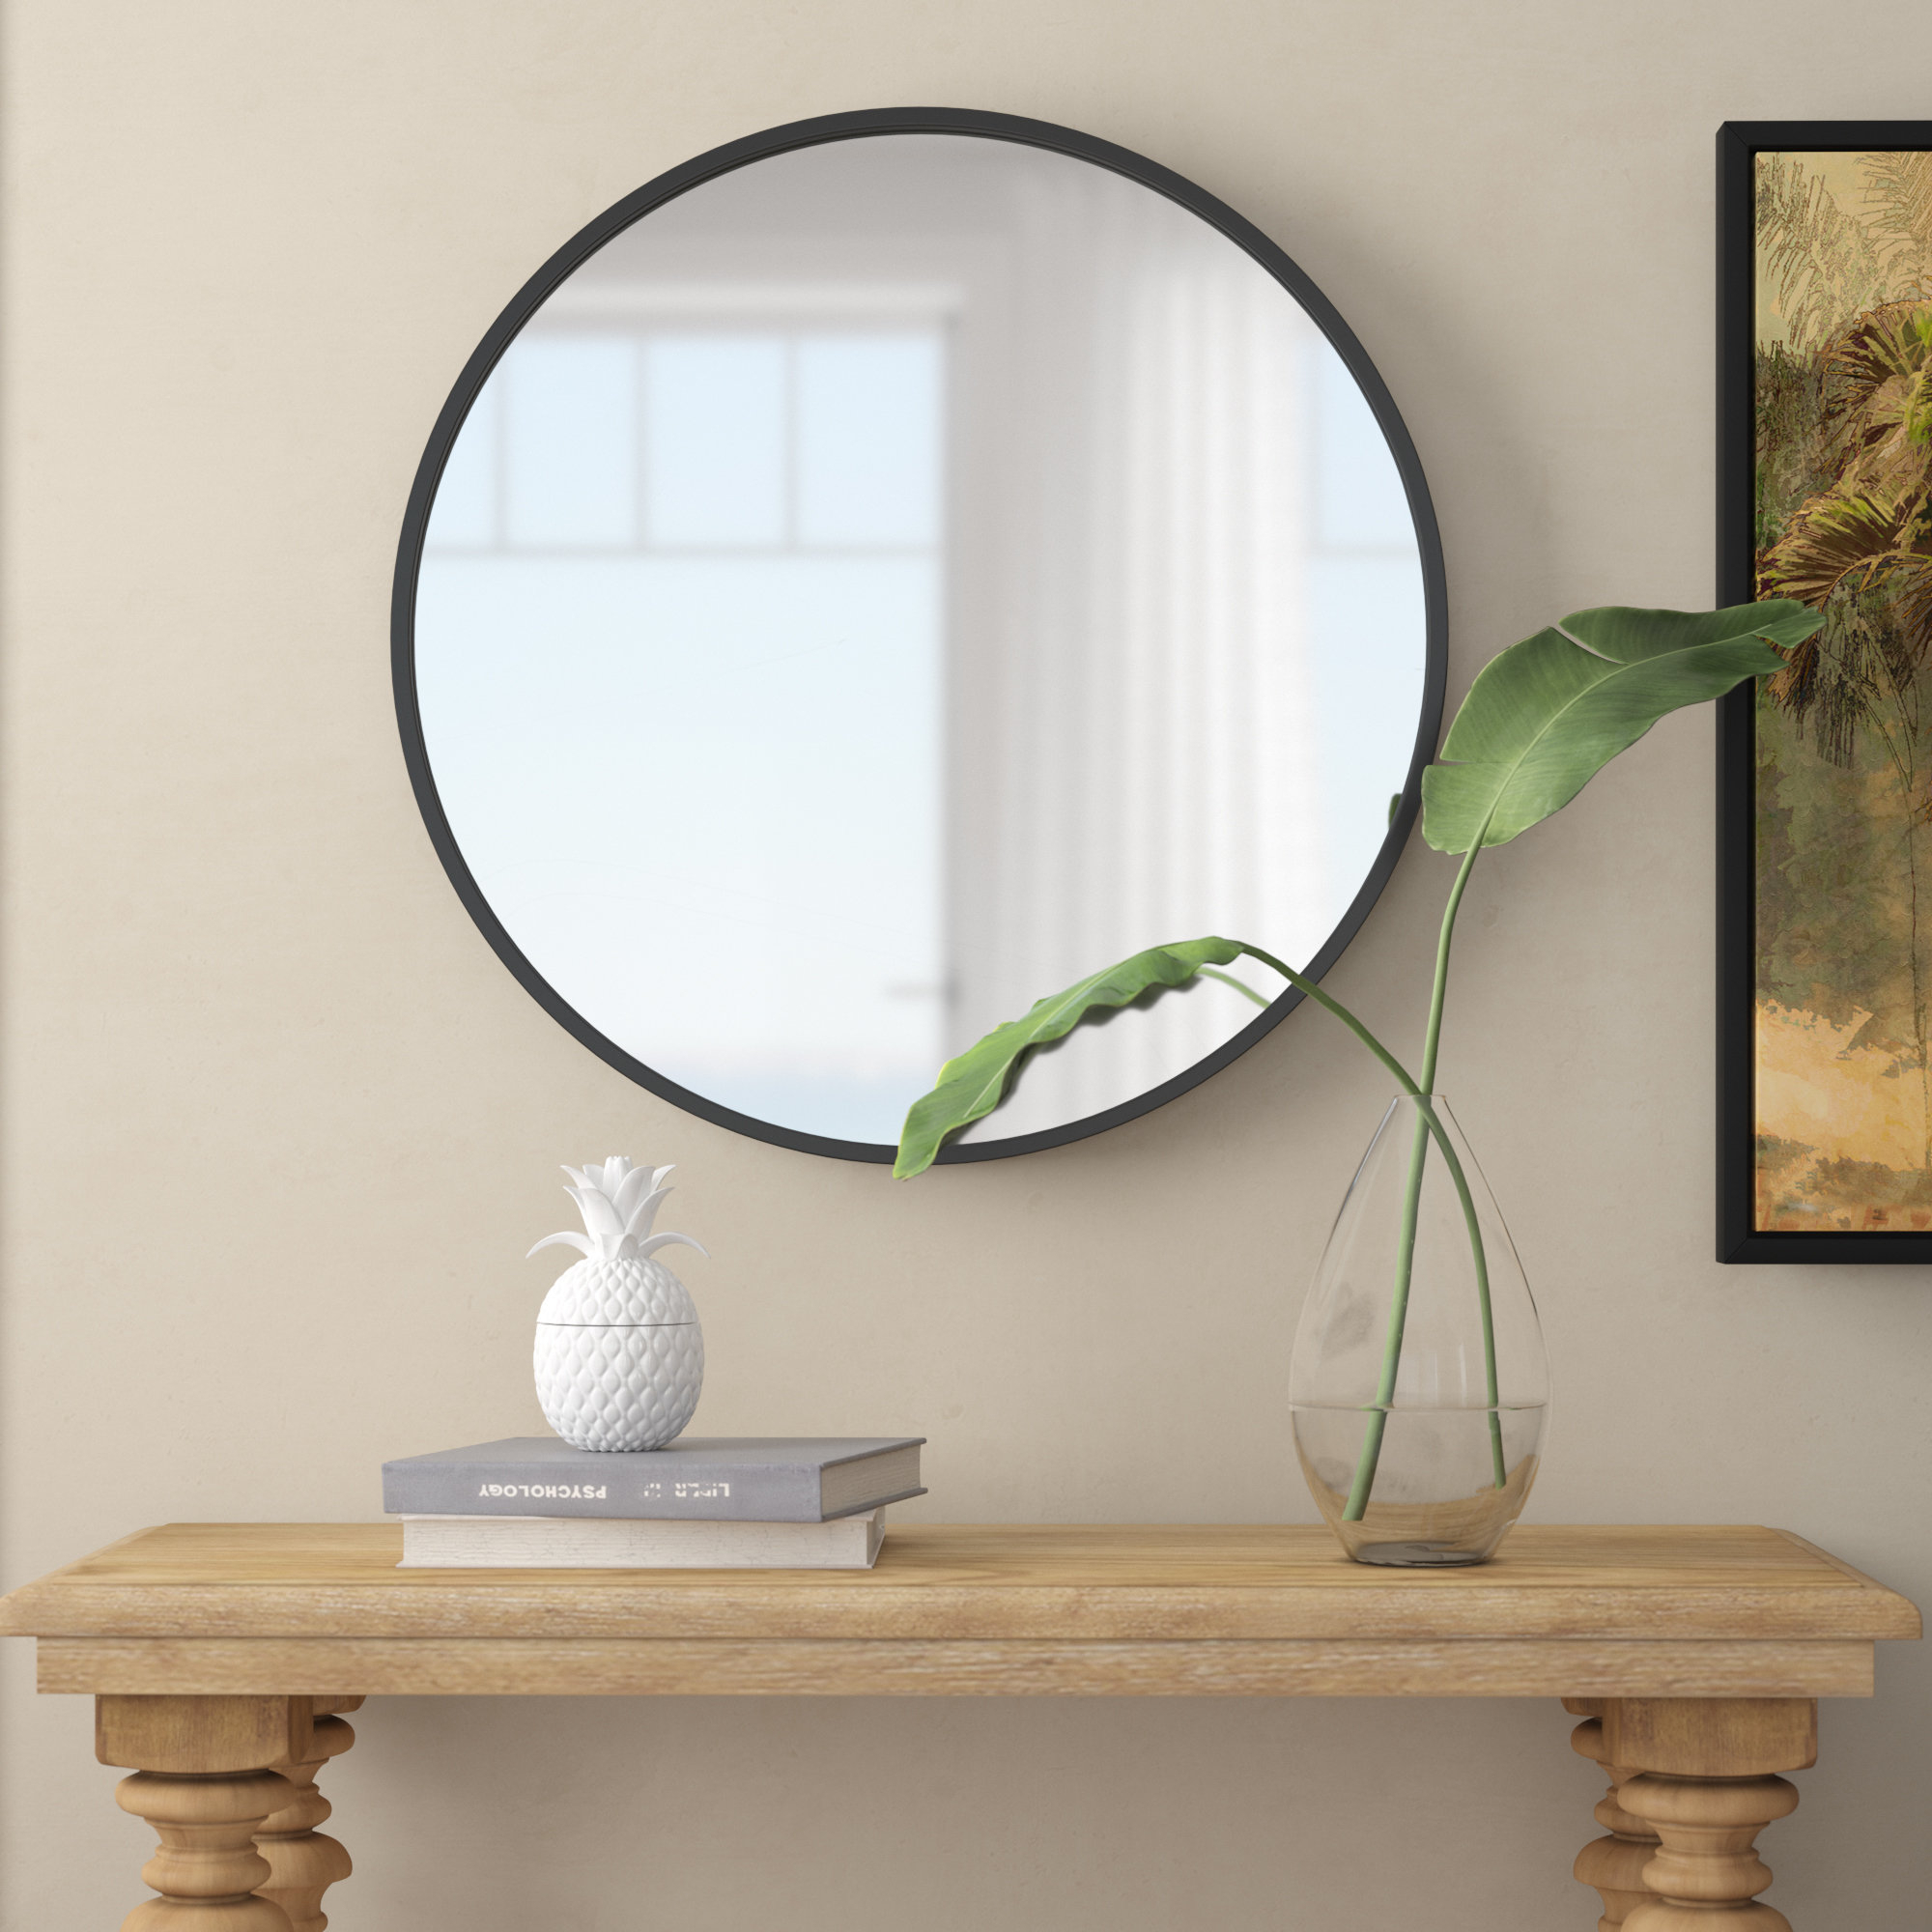 Studded Mirror   Wayfair In Polen Traditional Wall Mirrors (View 15 of 20)